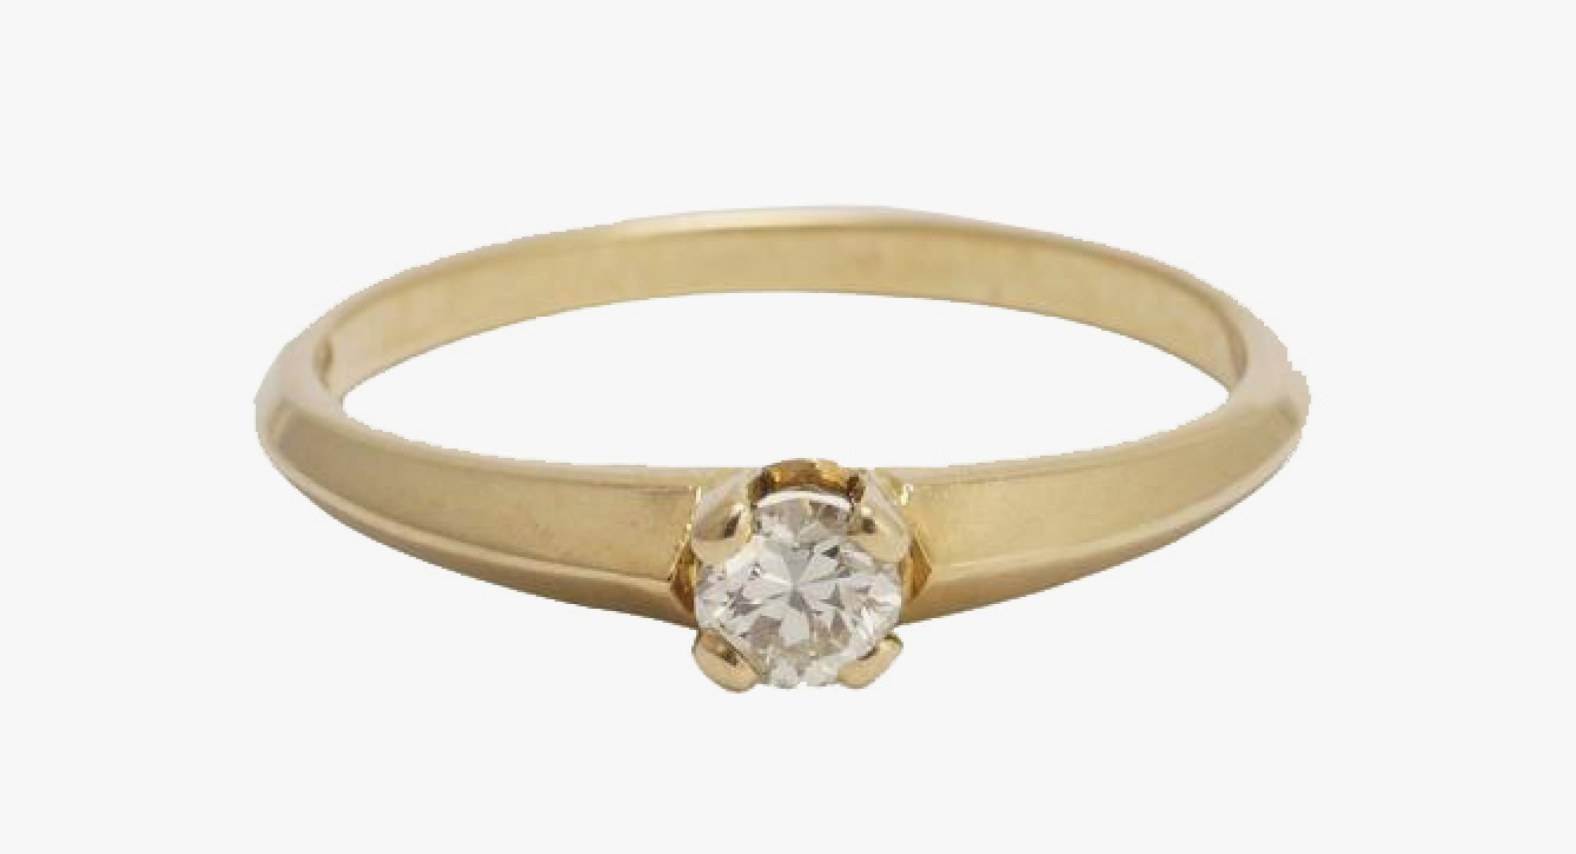 Engagement Rings : Beguile Diamond Rings Under 200 Dollars Awful For Gold Engagement Rings Under  (View 2 of 15)